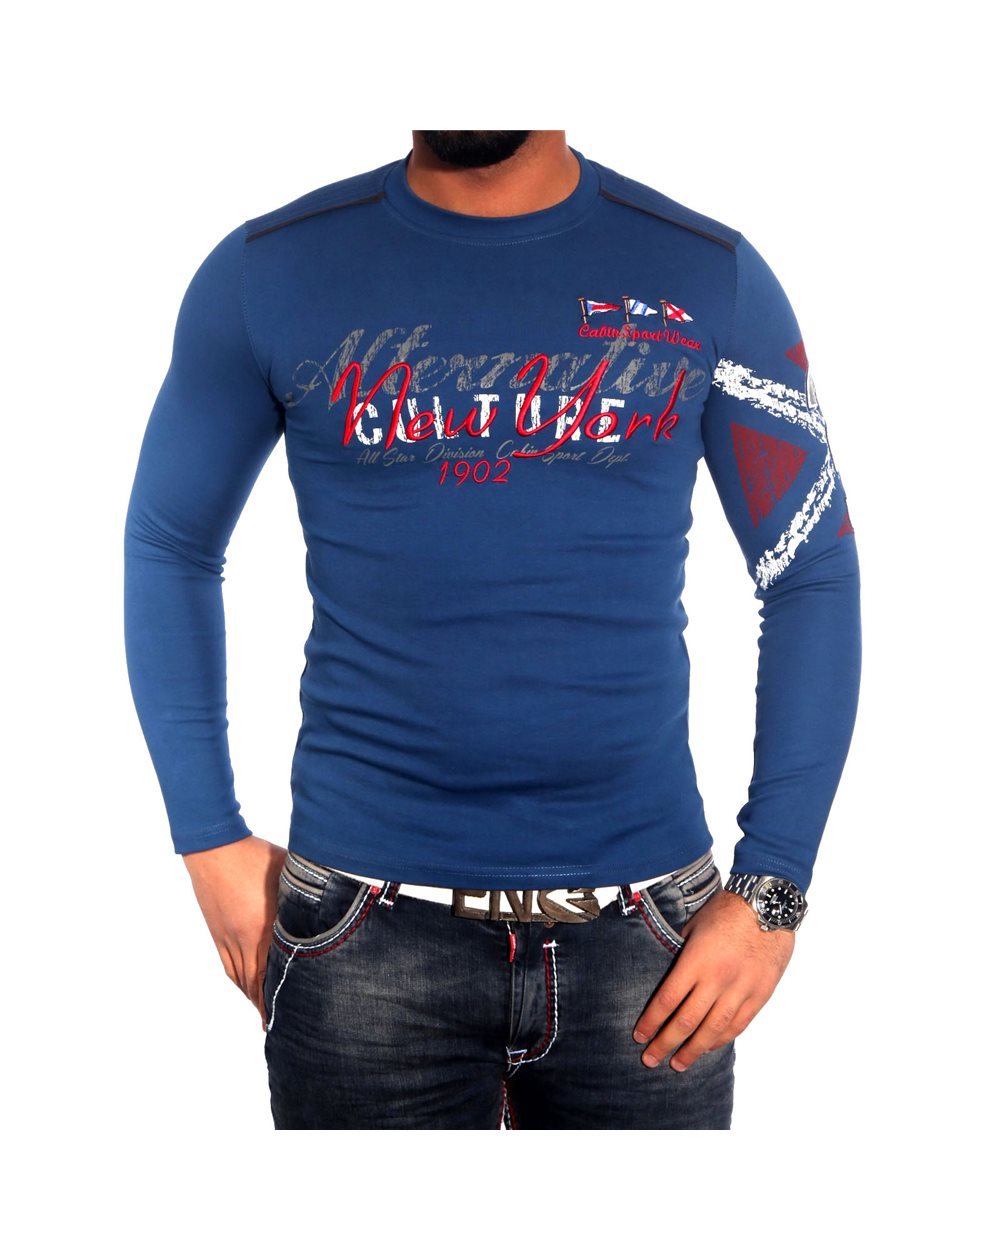 Subliminal Mode - Tee shirt homme manches longues col arrondi pull leger SBC150